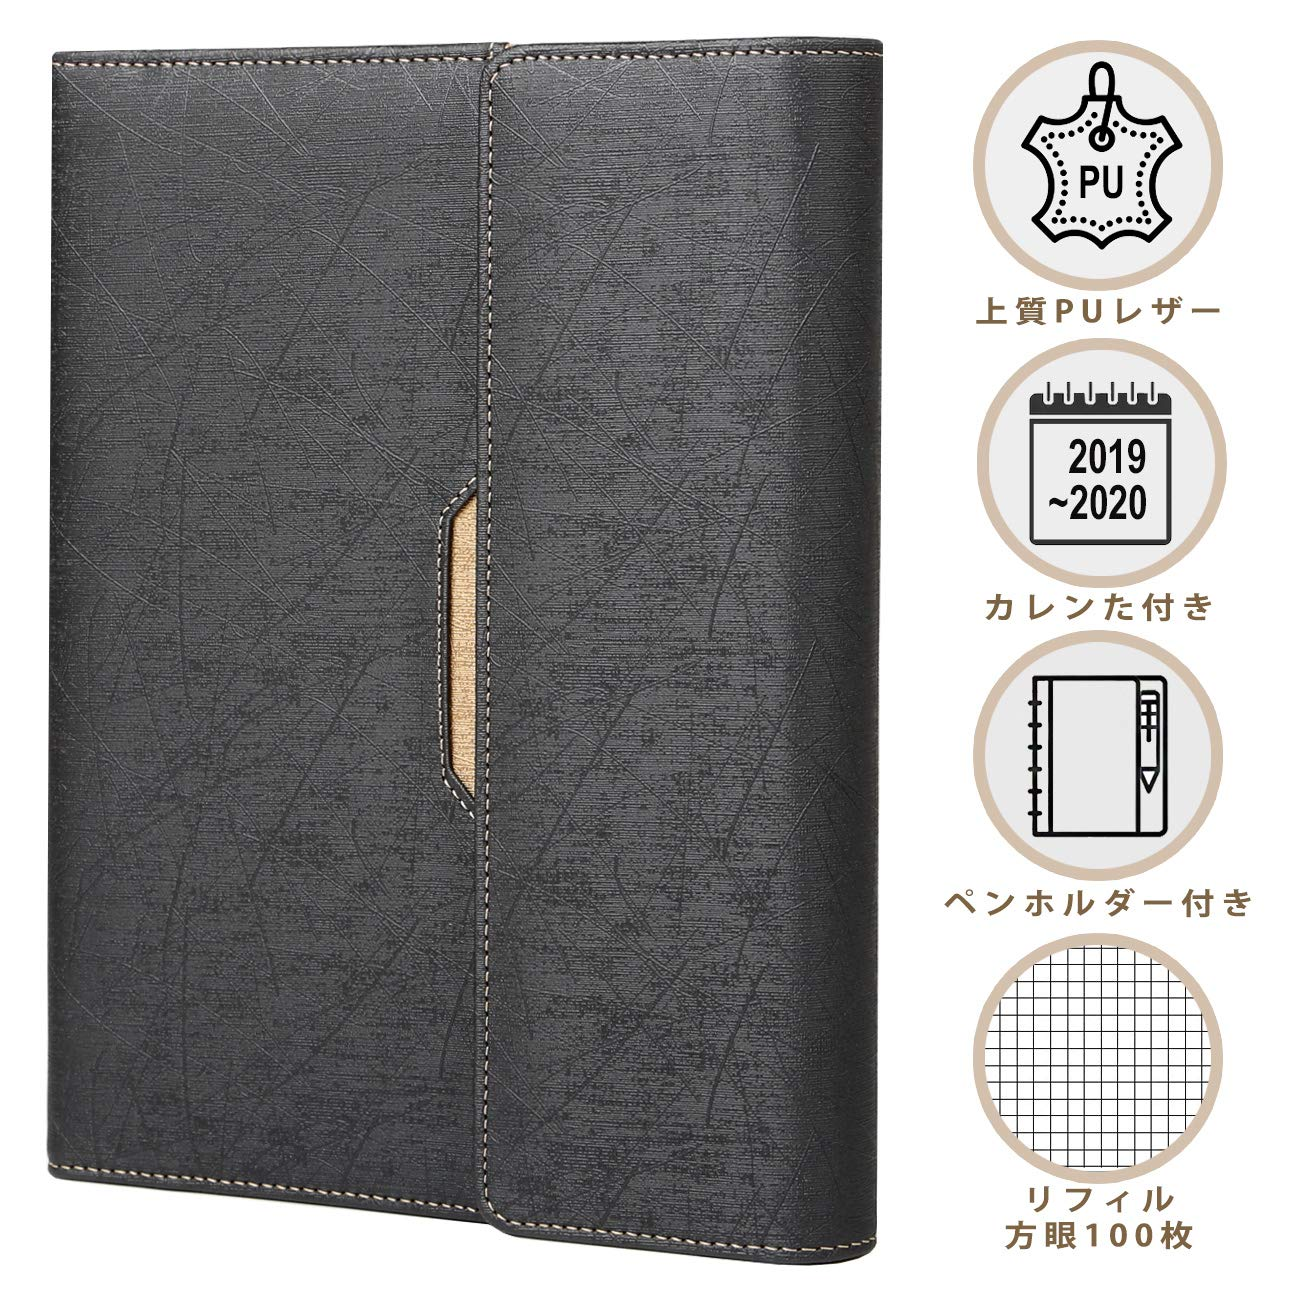 083793cdc8e7 [A&S] System Notebook A5 Size Note Pad Graph Note Standard Type 6 Hole Ring  0.2 in (5 mm) Square Refills 100 Card Storage Business Office Supplies ...